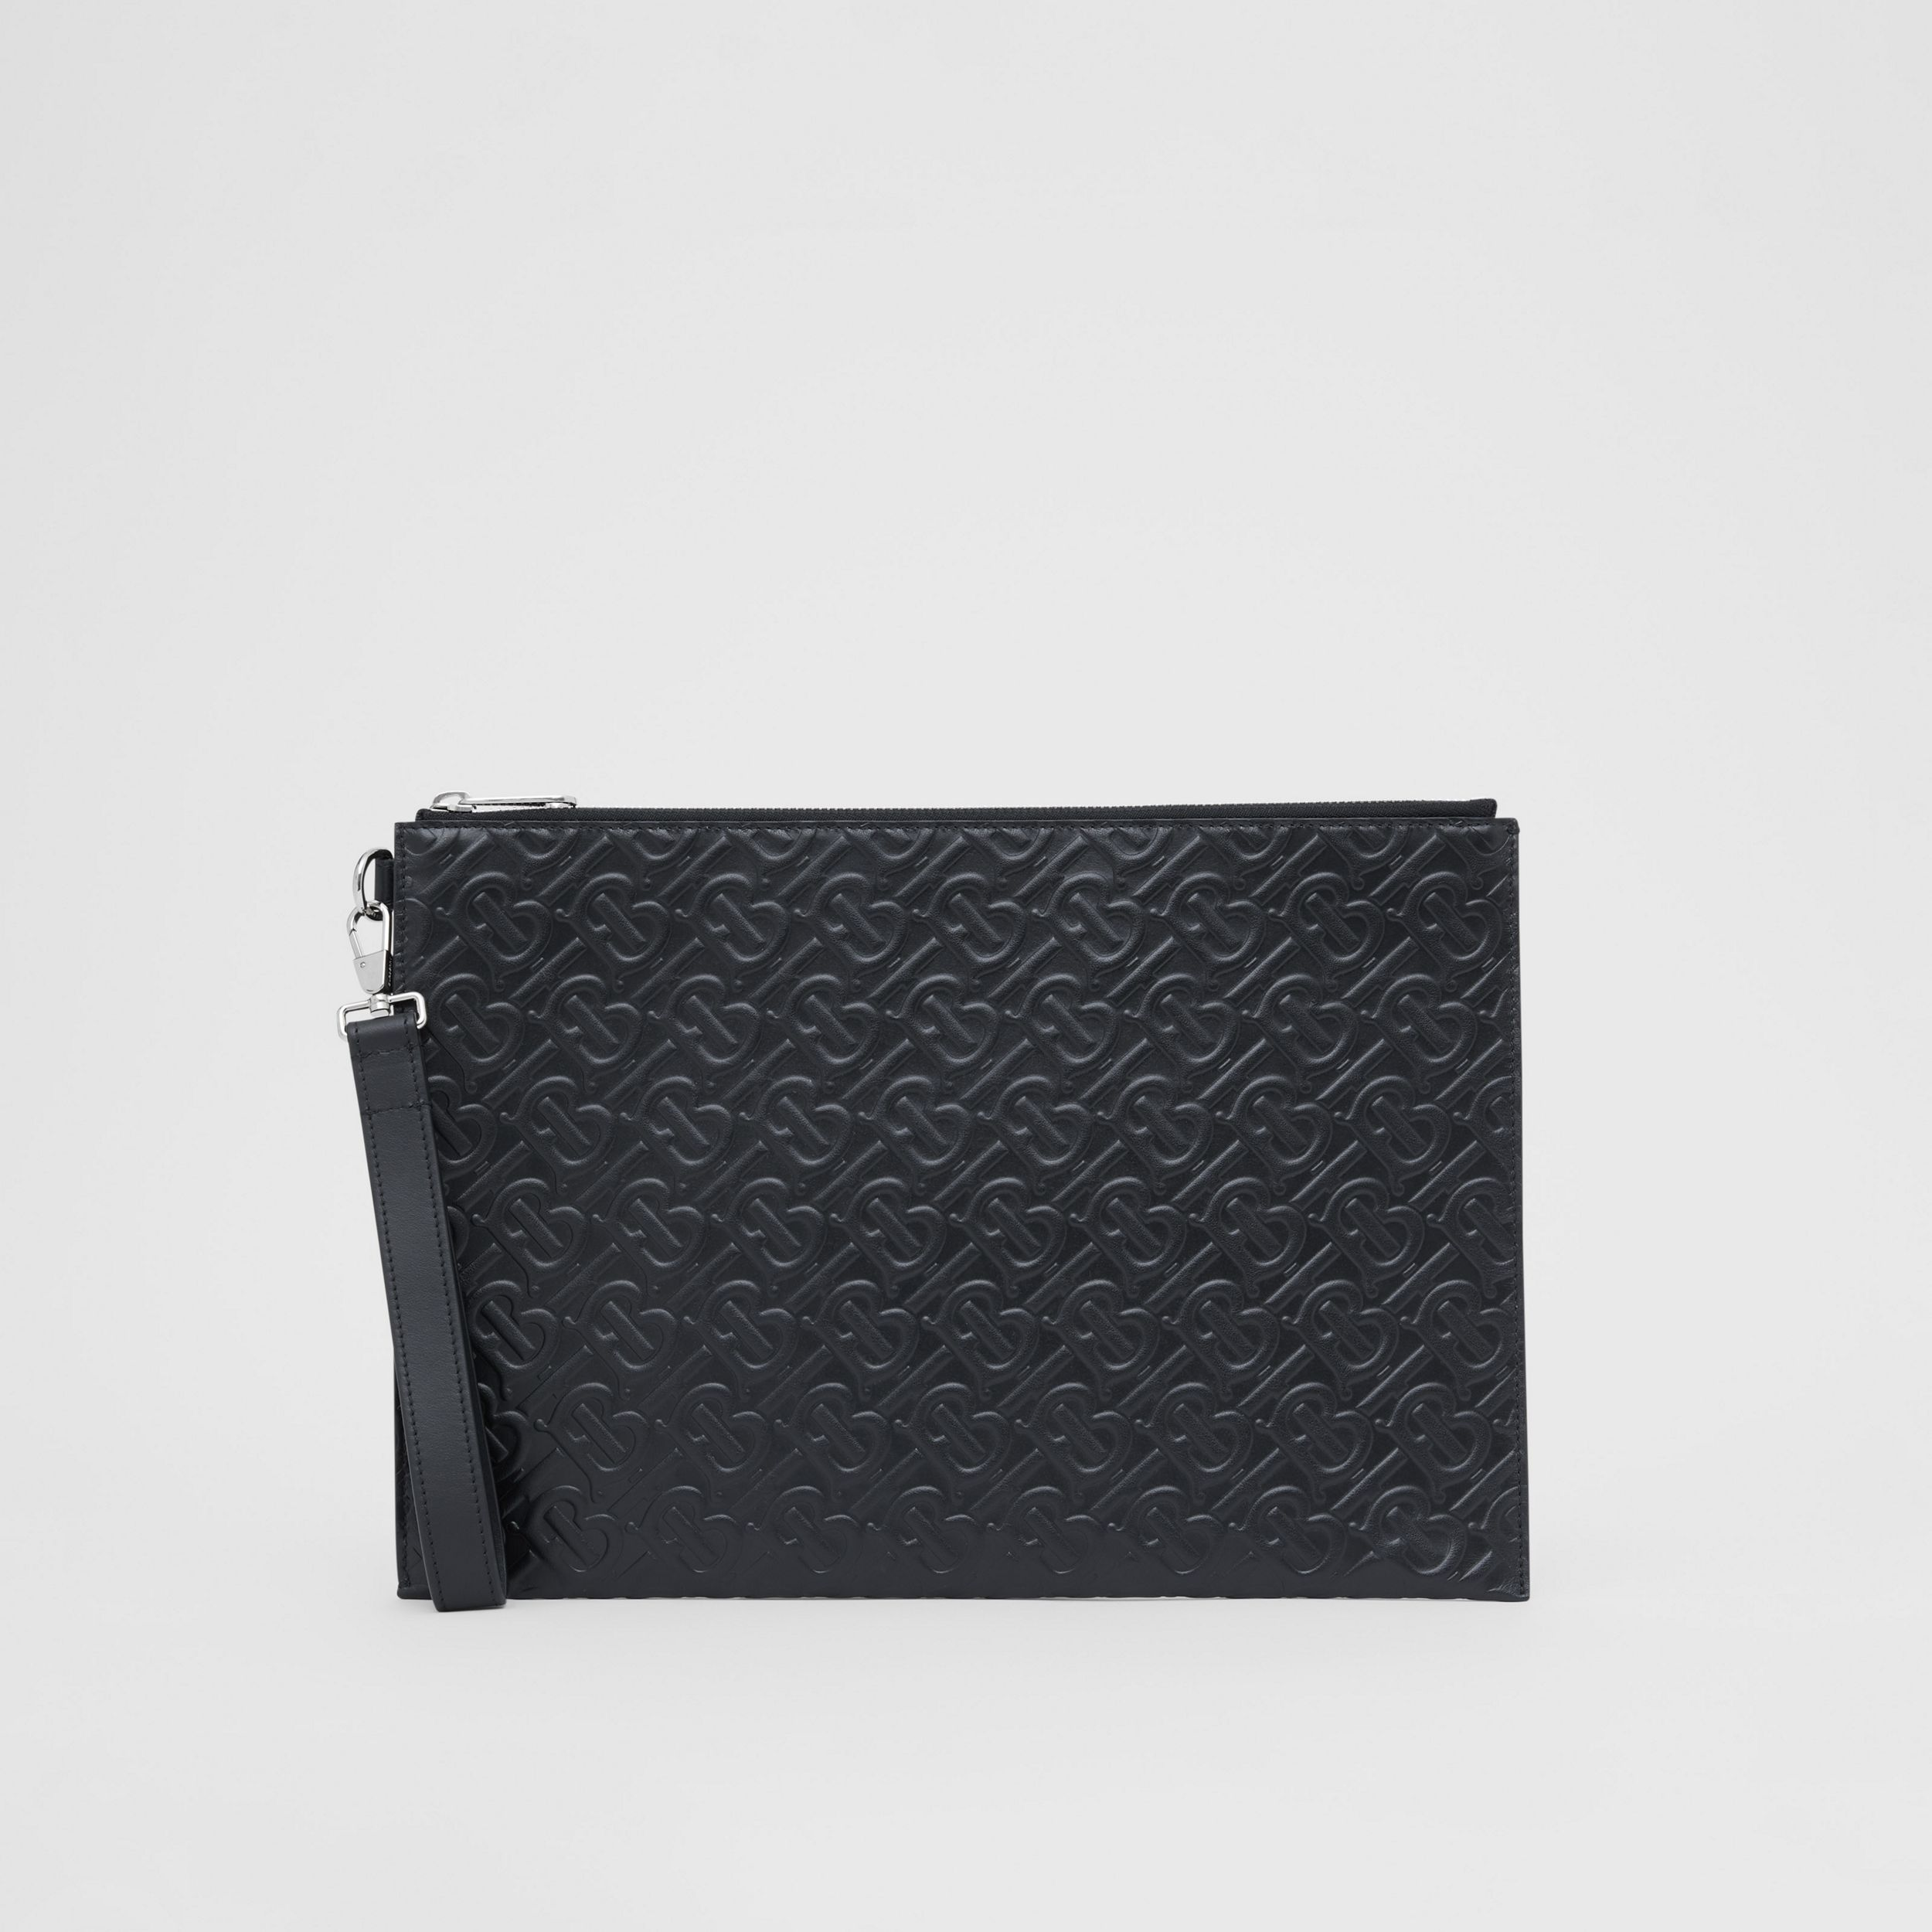 Large Monogram Leather Zip Pouch in Black | Burberry - 4